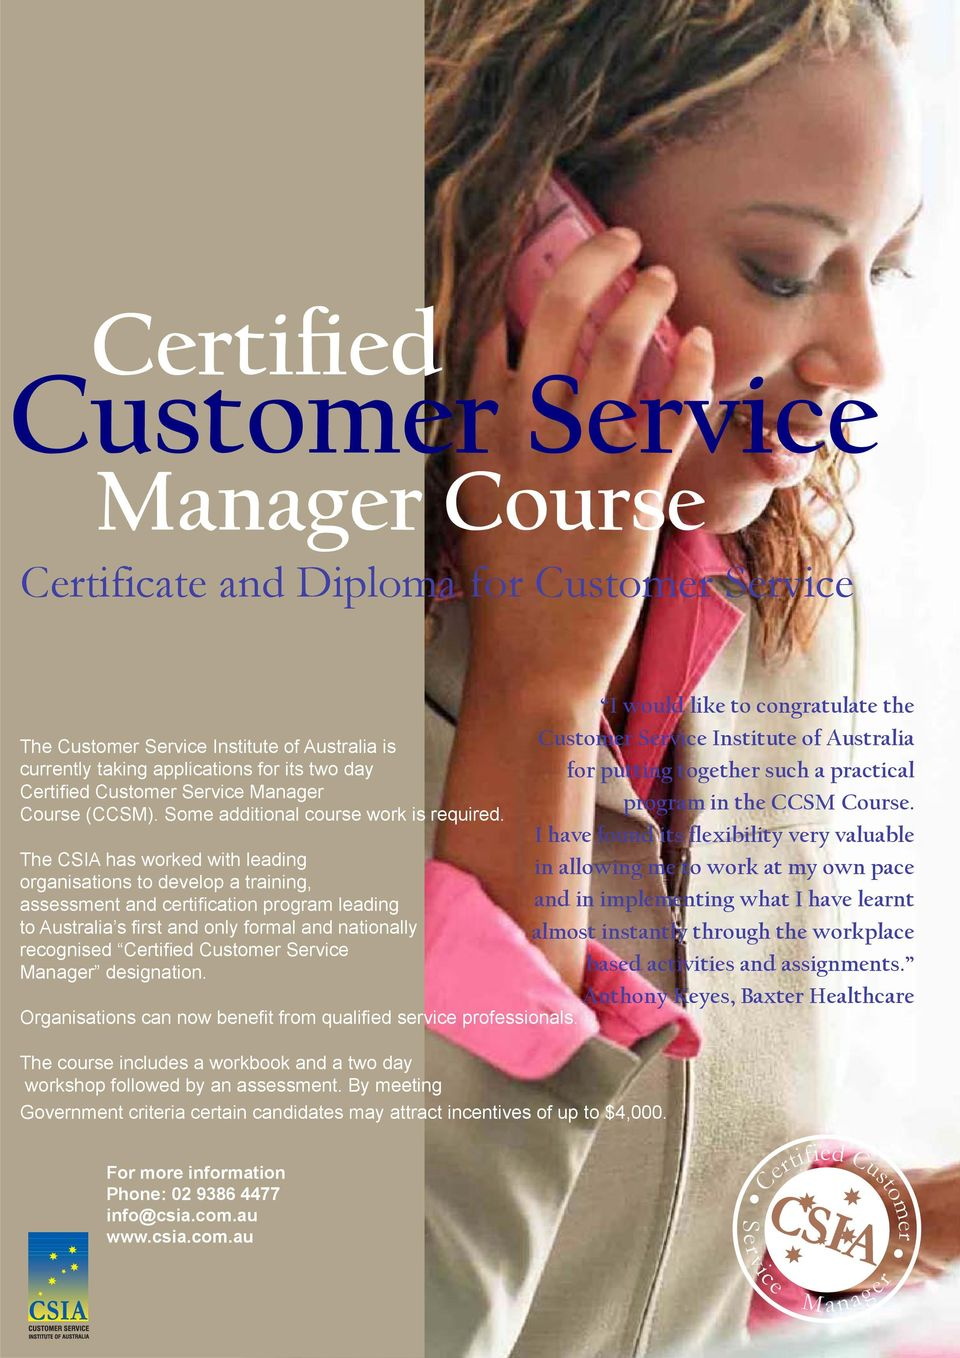 The CSIA has worked with leading organisations to develop a training, assessment and certi cation program leading to Australia s first and only formal and nationally recognised Certi ed Customer